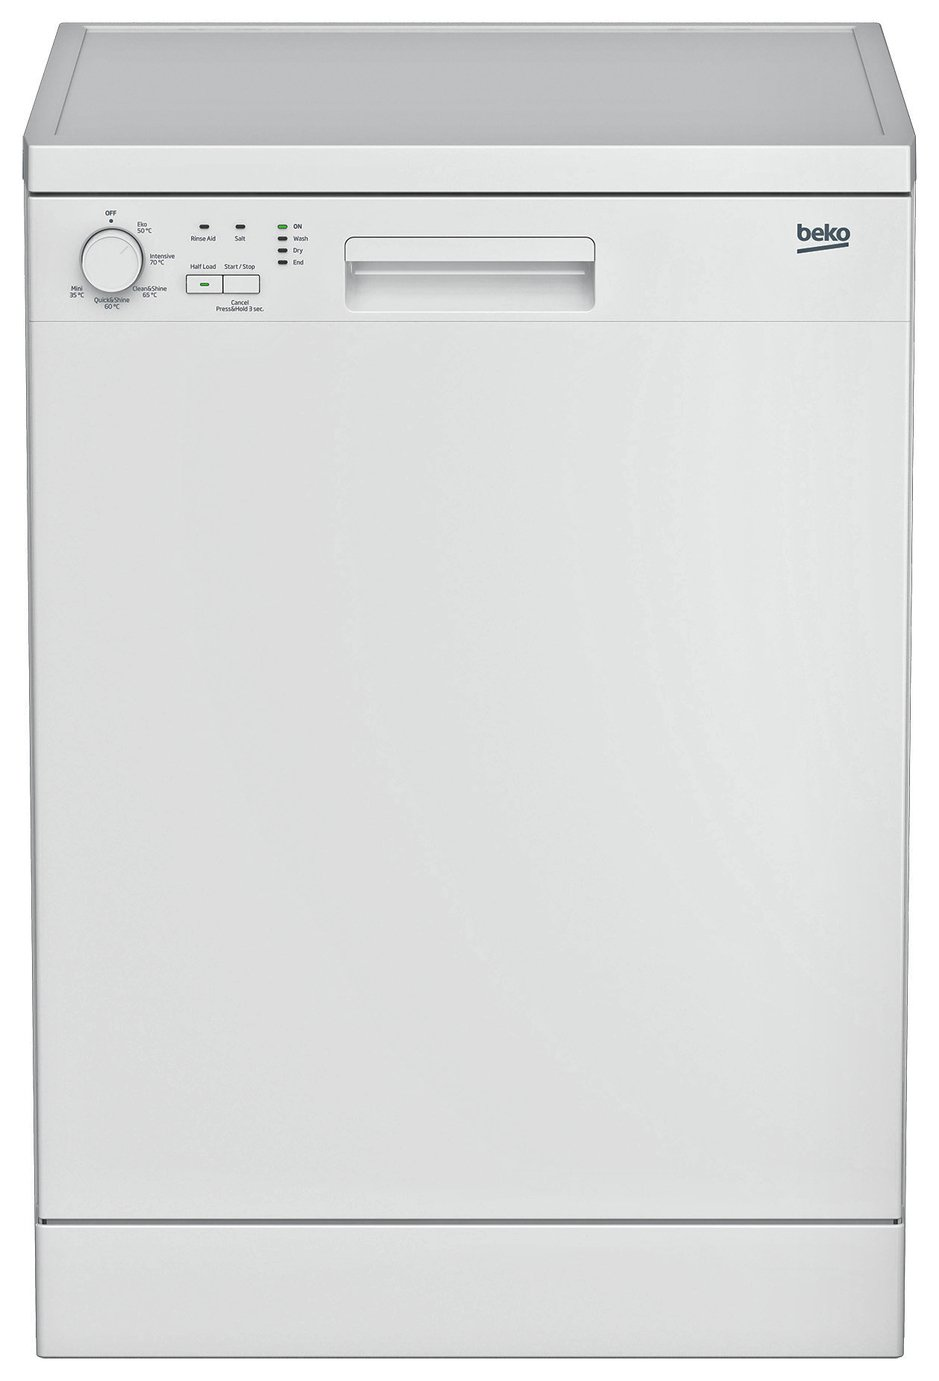 Beko DFN05310W Full Size Dishwasher - White from Beko